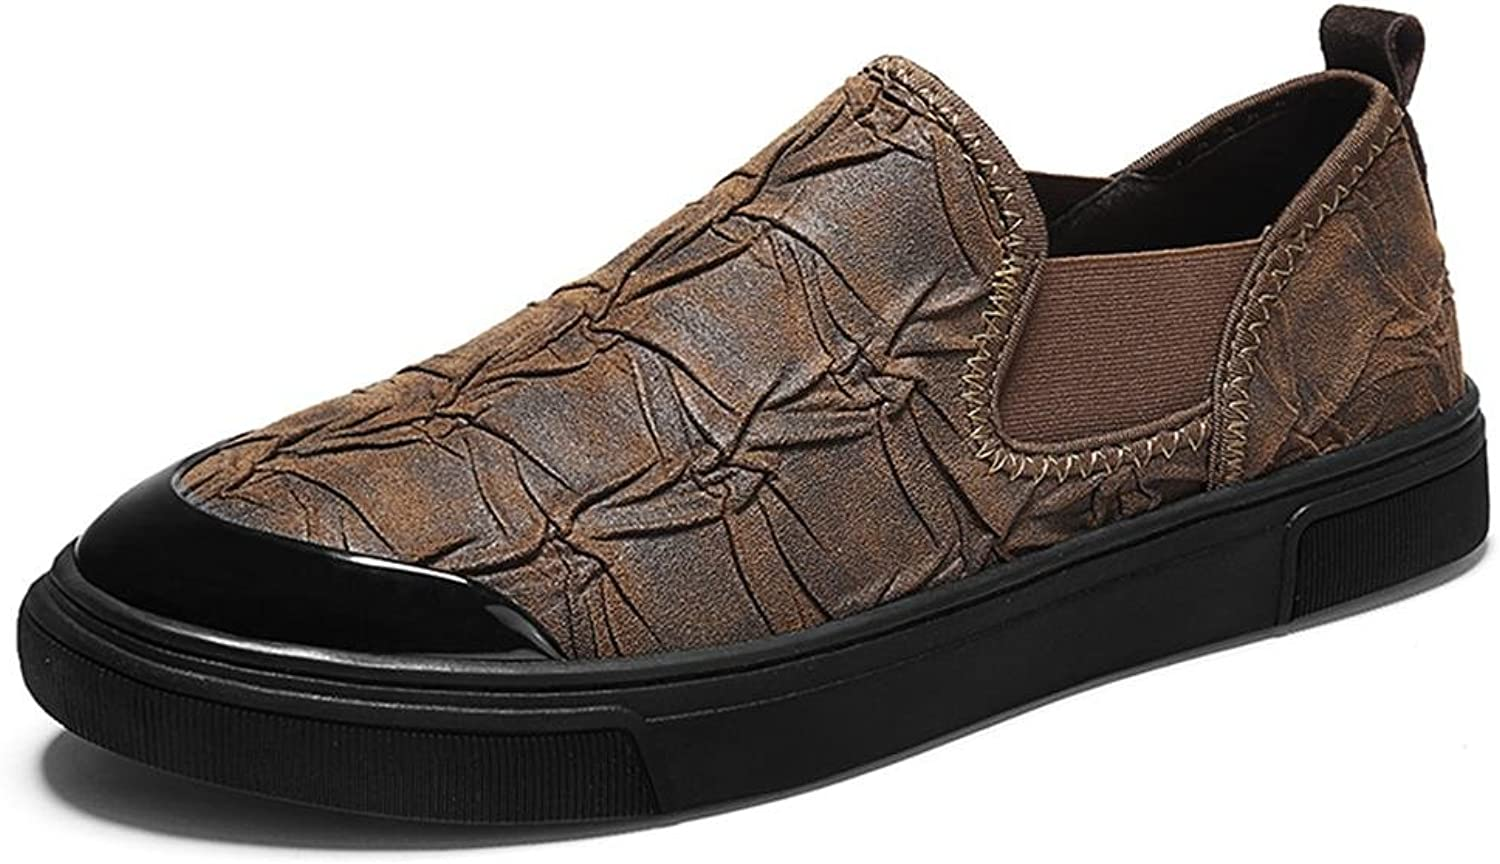 Men's Slip On Casual Loafers Leather Breathable Loafer Fashion Flats Driving shoes